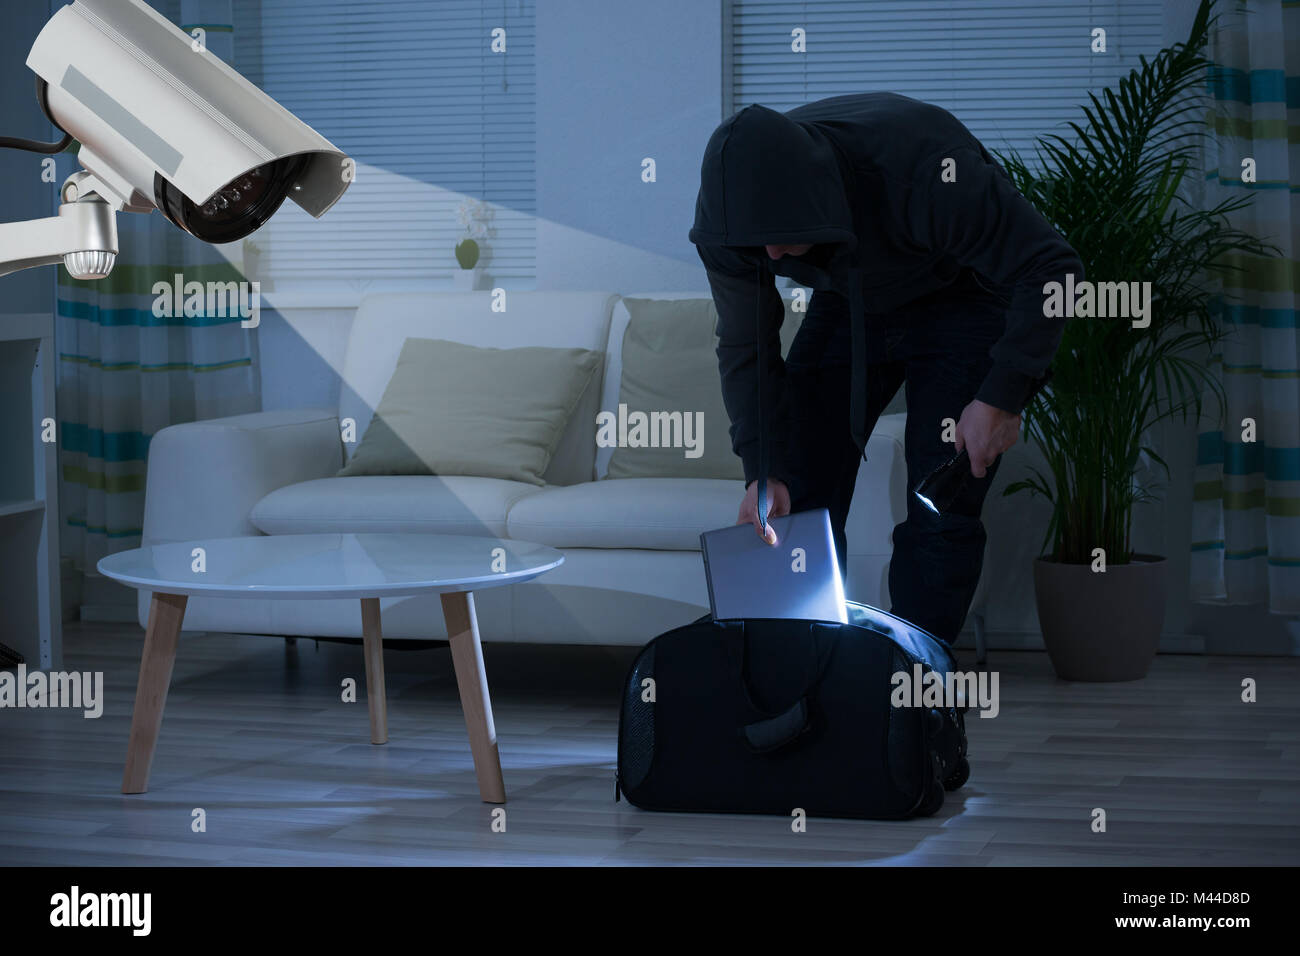 CCTV Camera Showing A Burglar Stealing Things In The House At Night - Stock Image